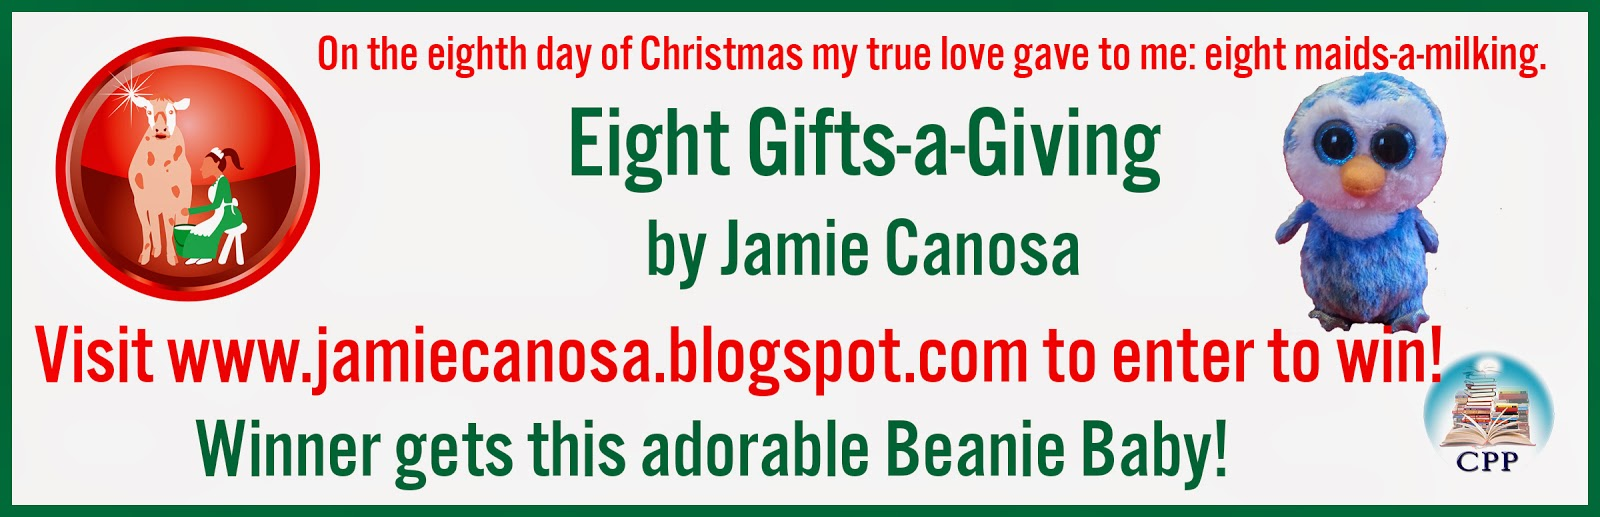 12 days of christmas gifts day 8 winners